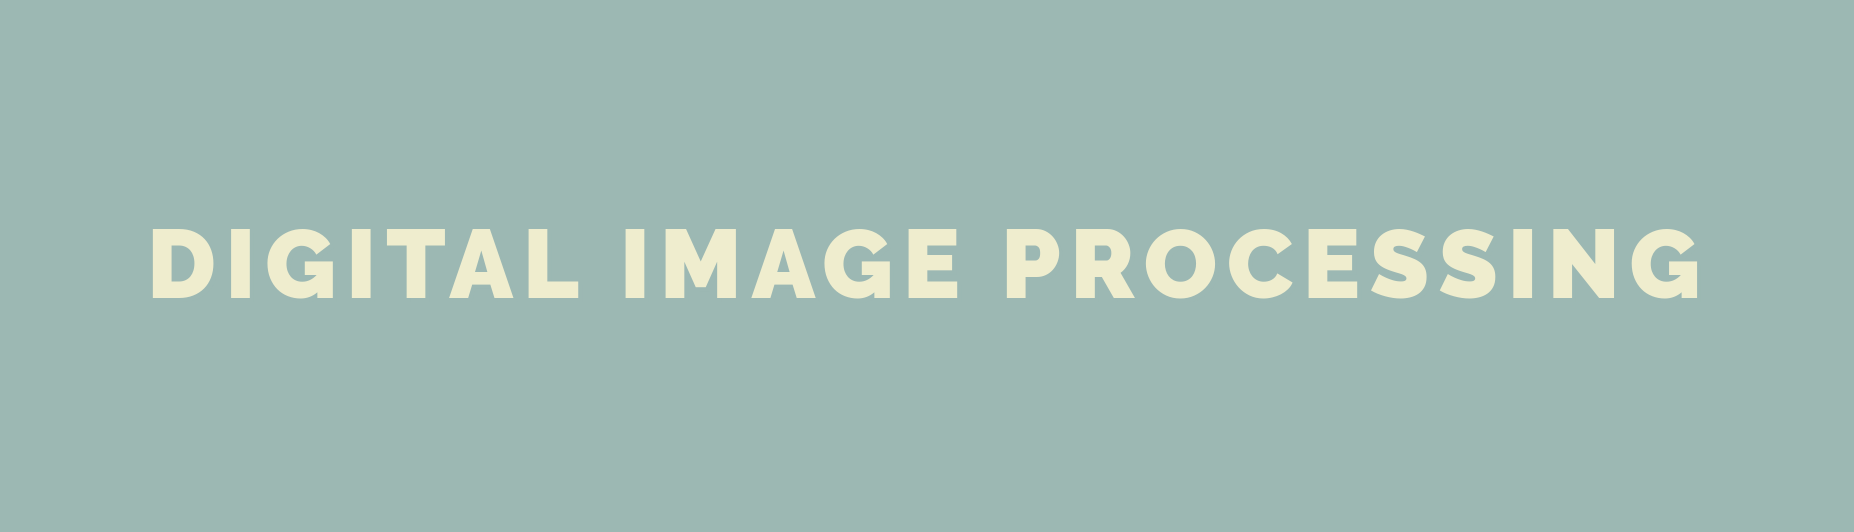 How To Build Amazing Image Filters With Python Median Filter